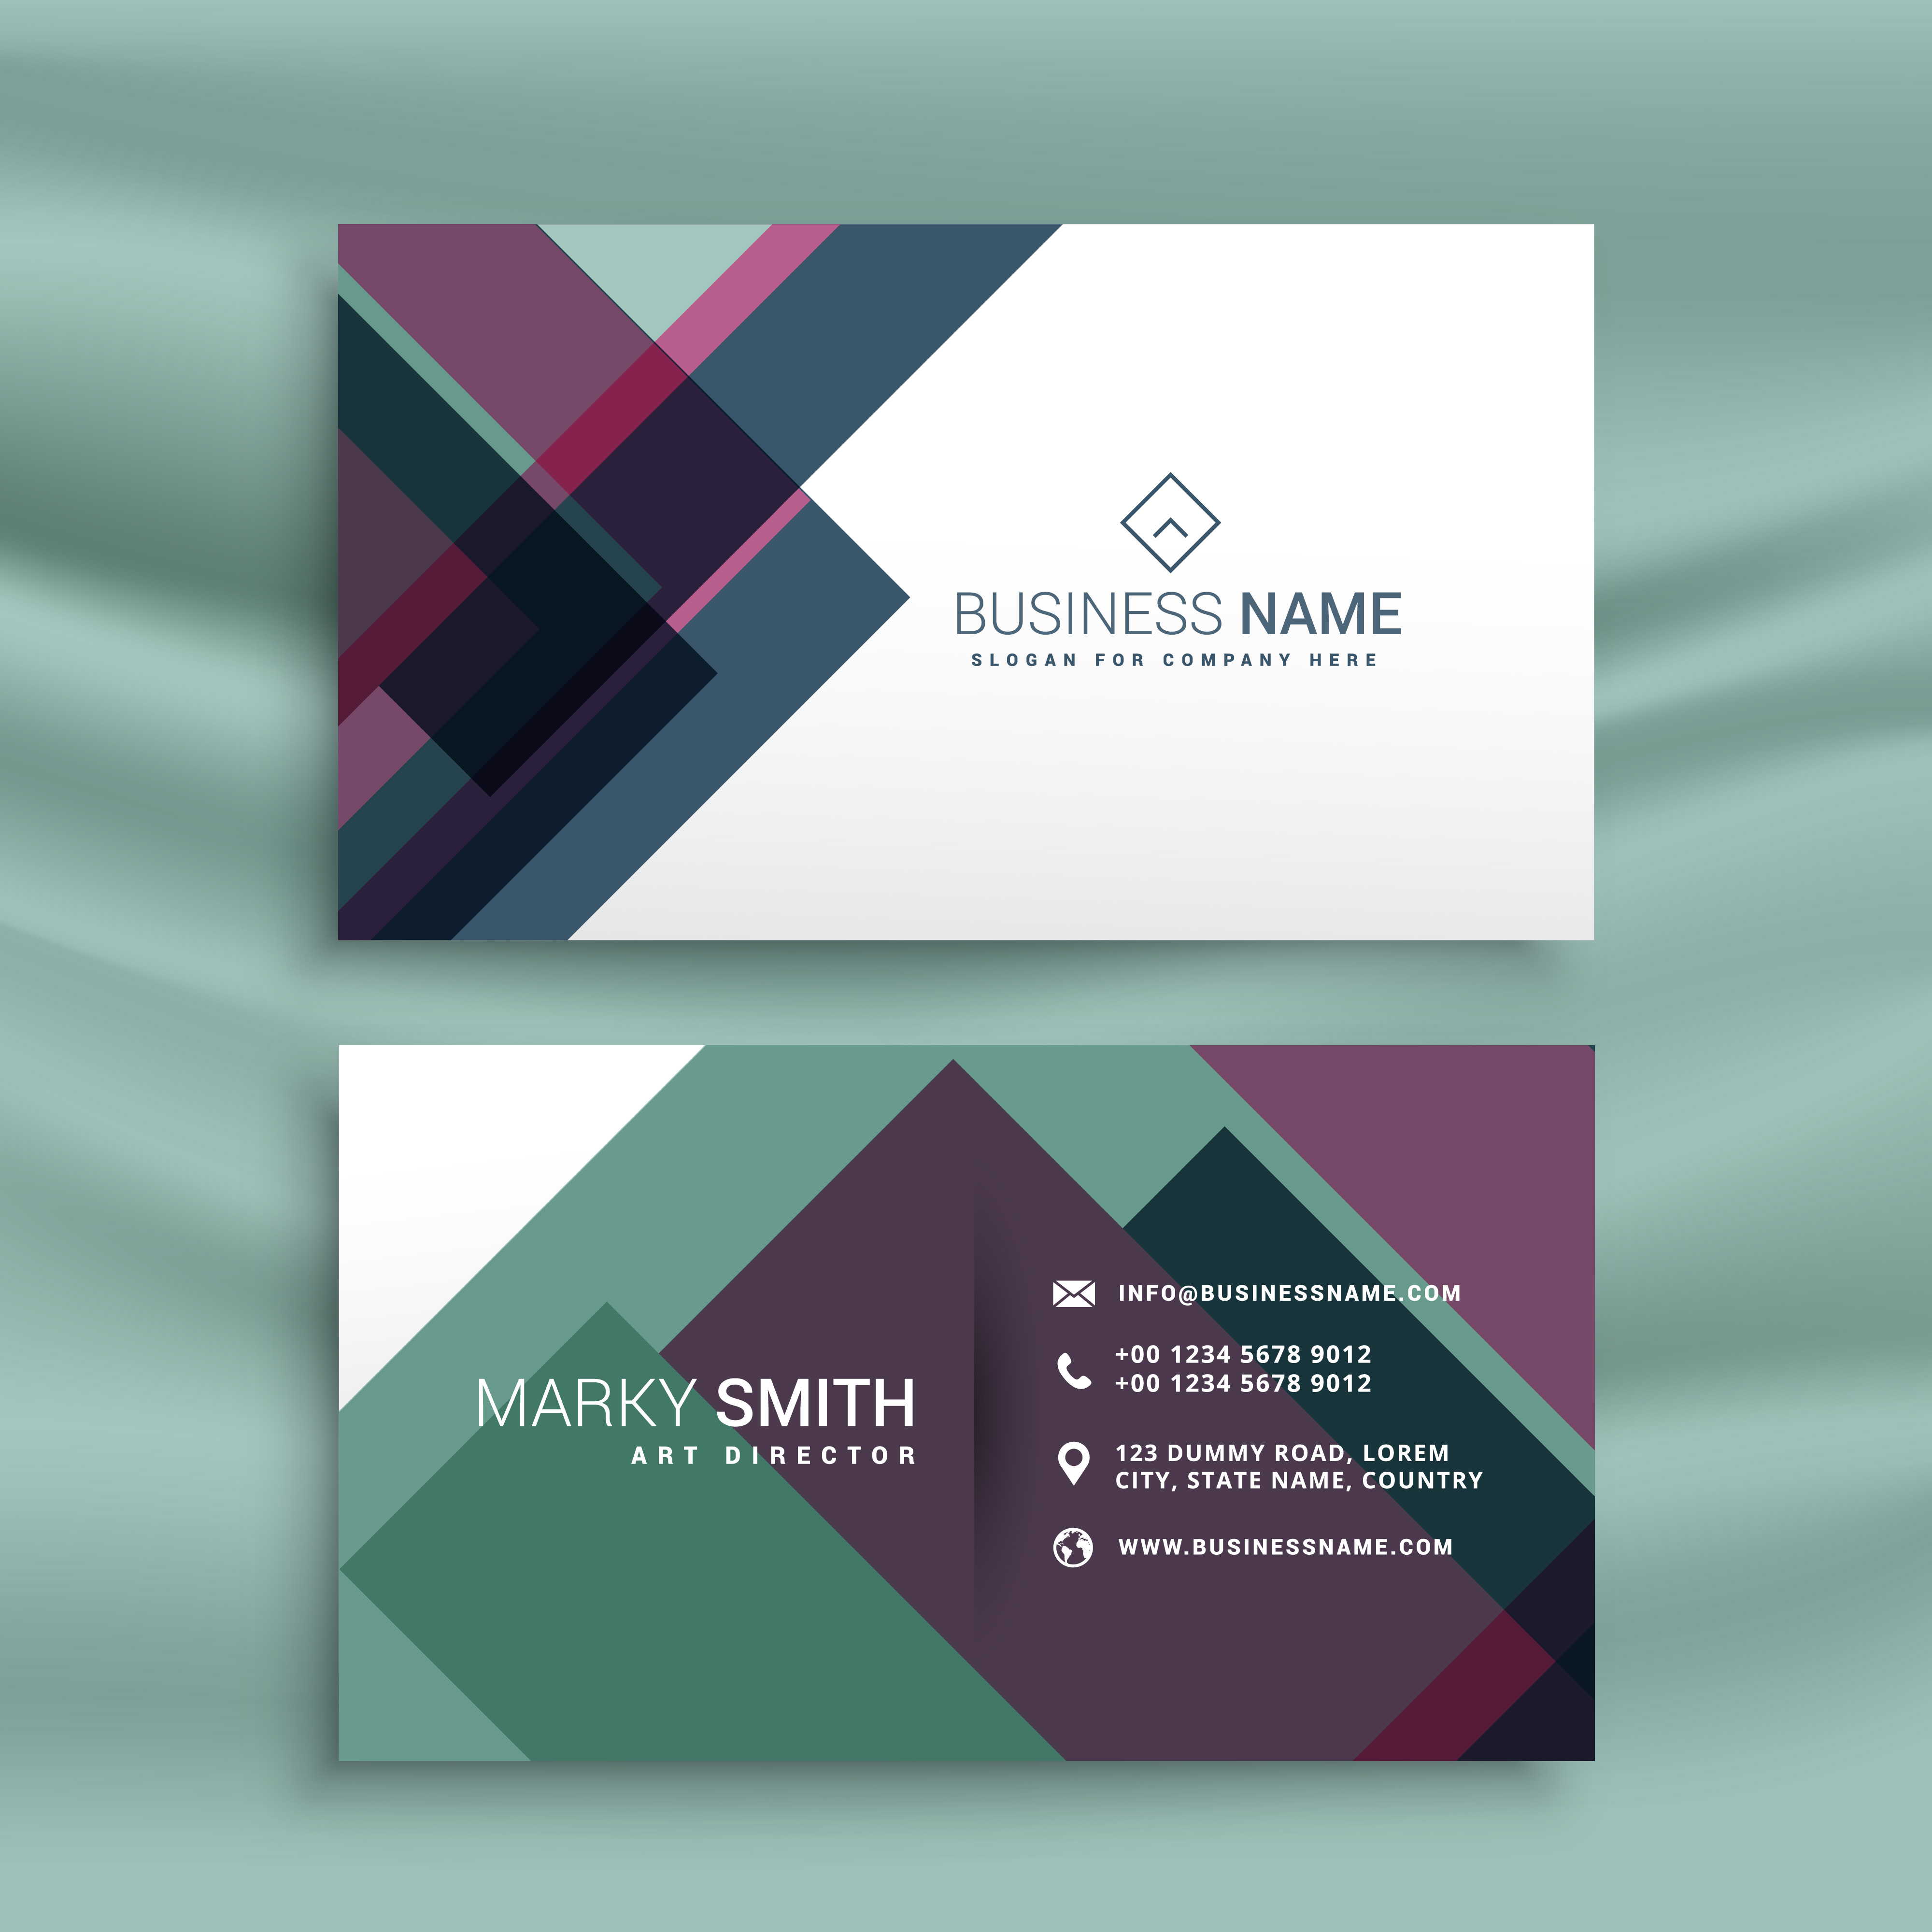 Powerpoint Business Card Templates Free: Business Card Presentation Template With Abstract Colorful